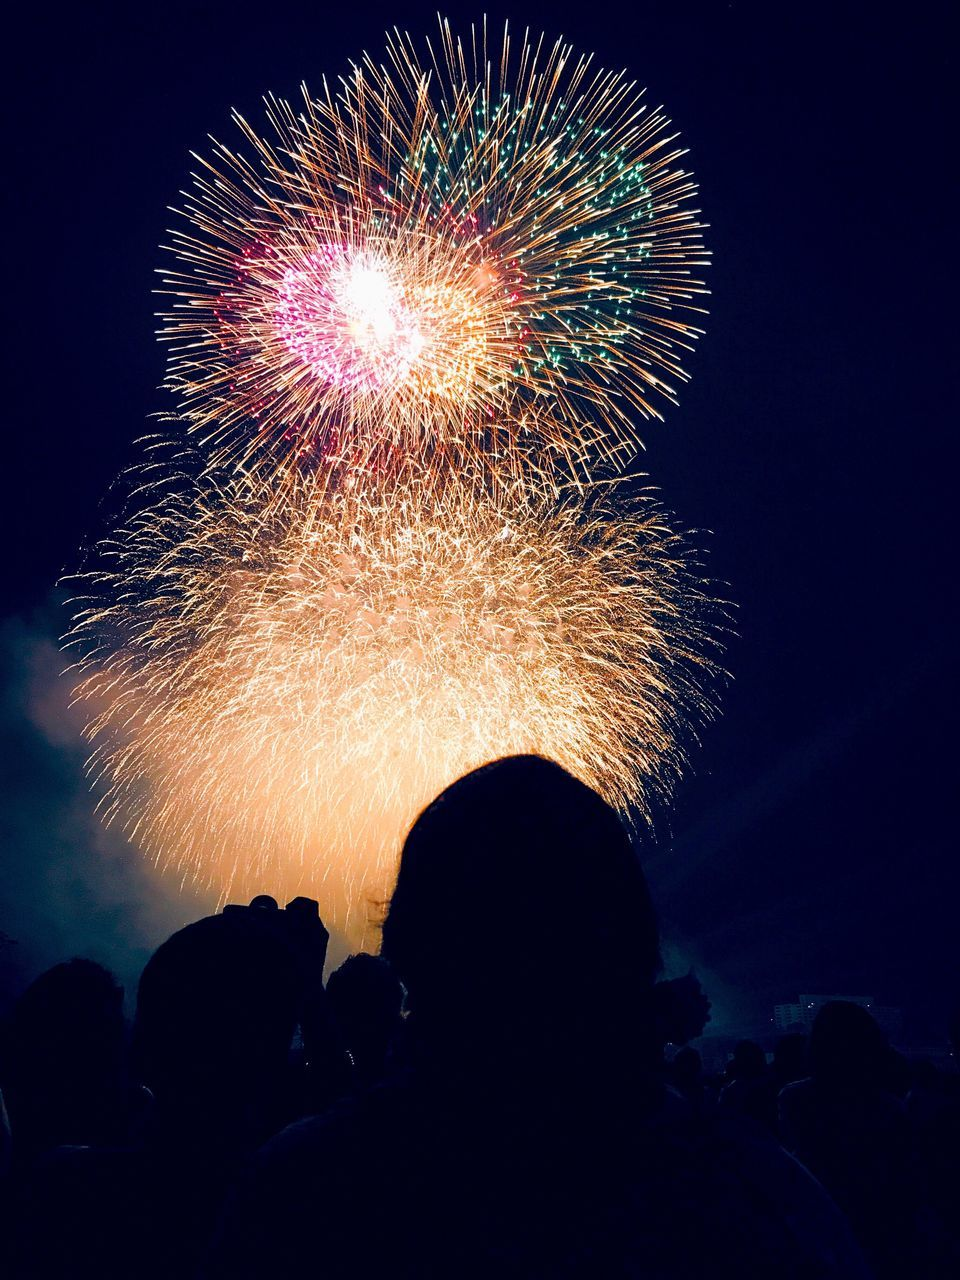 firework display, night, real people, celebration, event, arts culture and entertainment, low angle view, firework - man made object, exploding, leisure activity, silhouette, illuminated, men, excitement, long exposure, women, lifestyles, firework, large group of people, multi colored, sky, outdoors, motion, group of people, audience, crowd, people